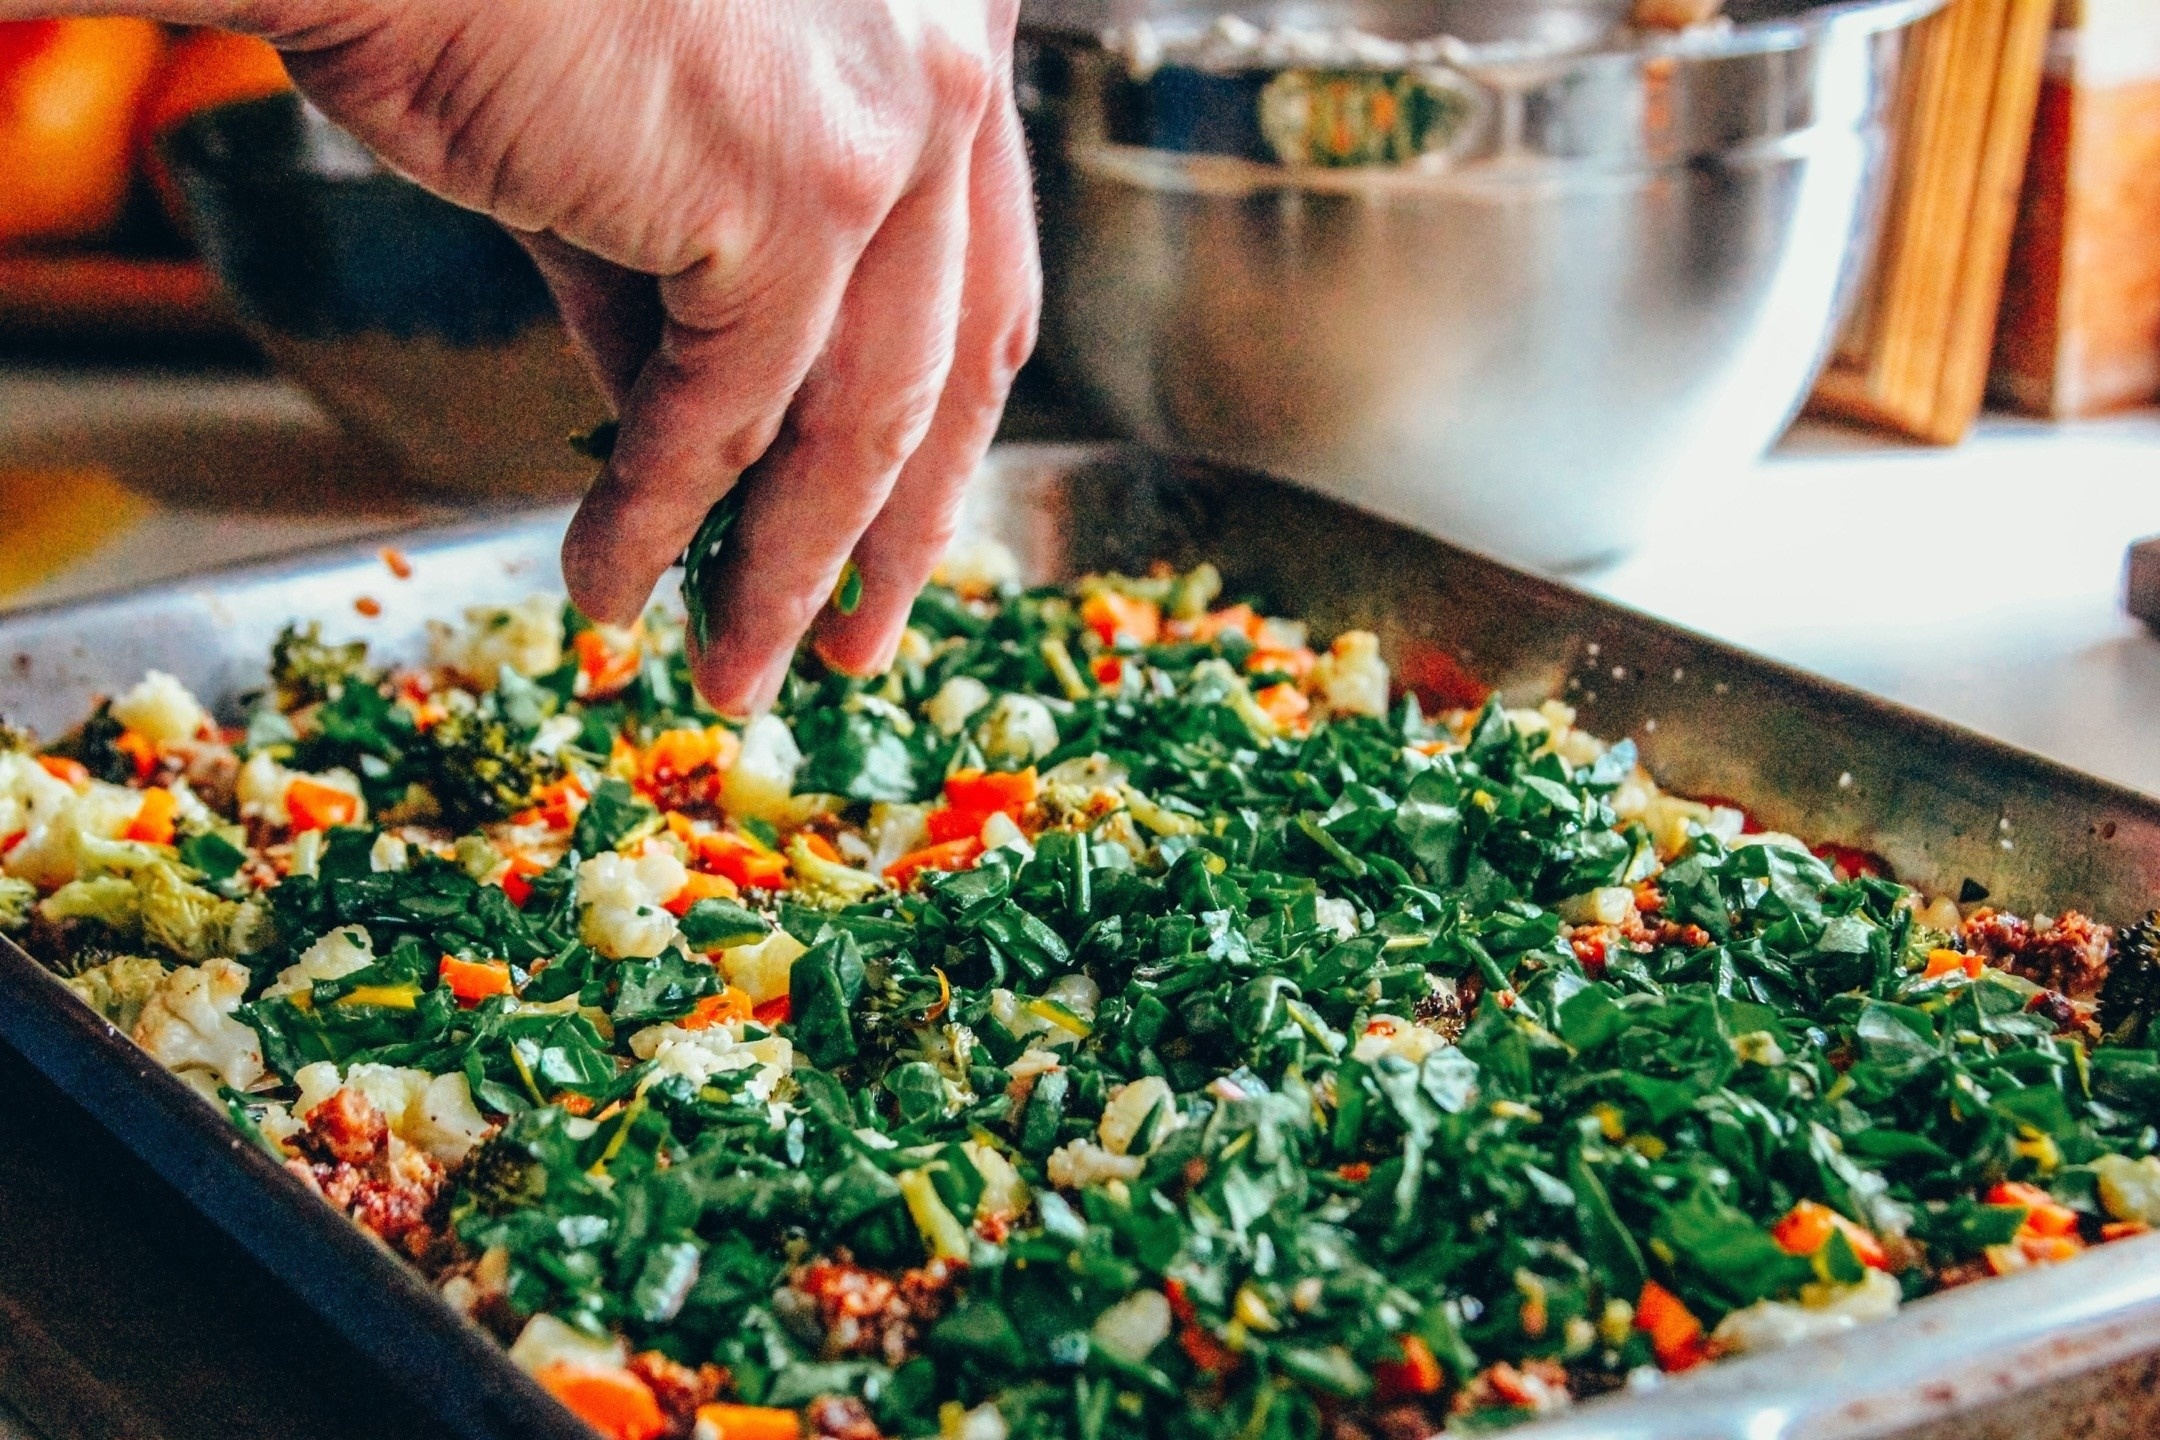 sprinkling greens on a pan of Your Vegan Family lasagne